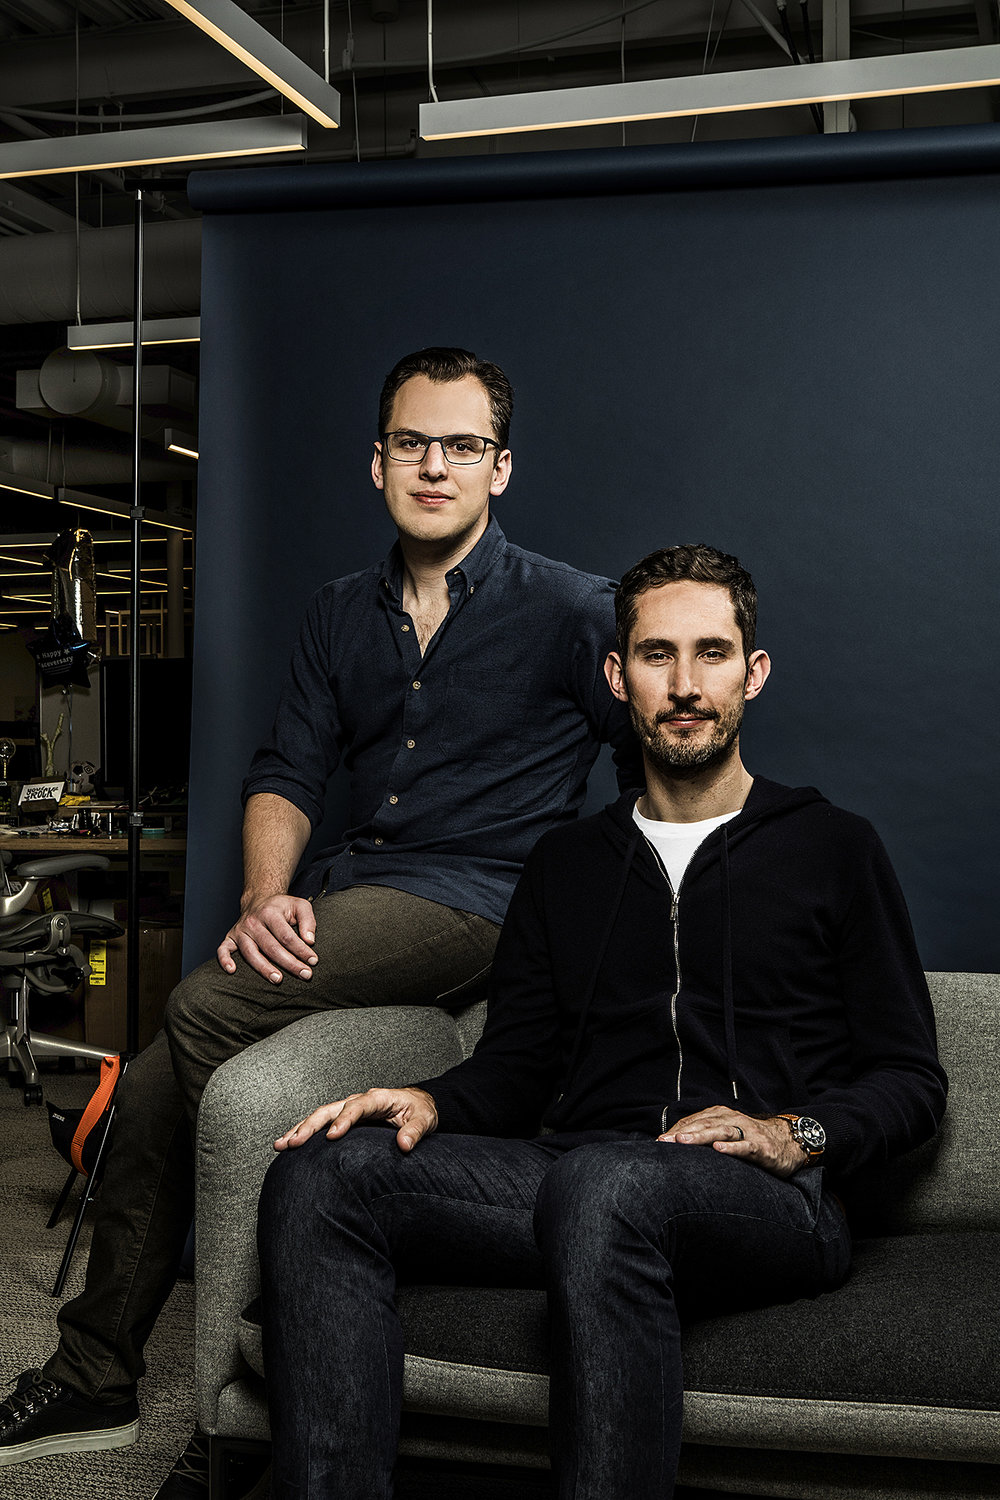 Instagram founders, Kevin Systrom and Mike Krieger for The New York Times.